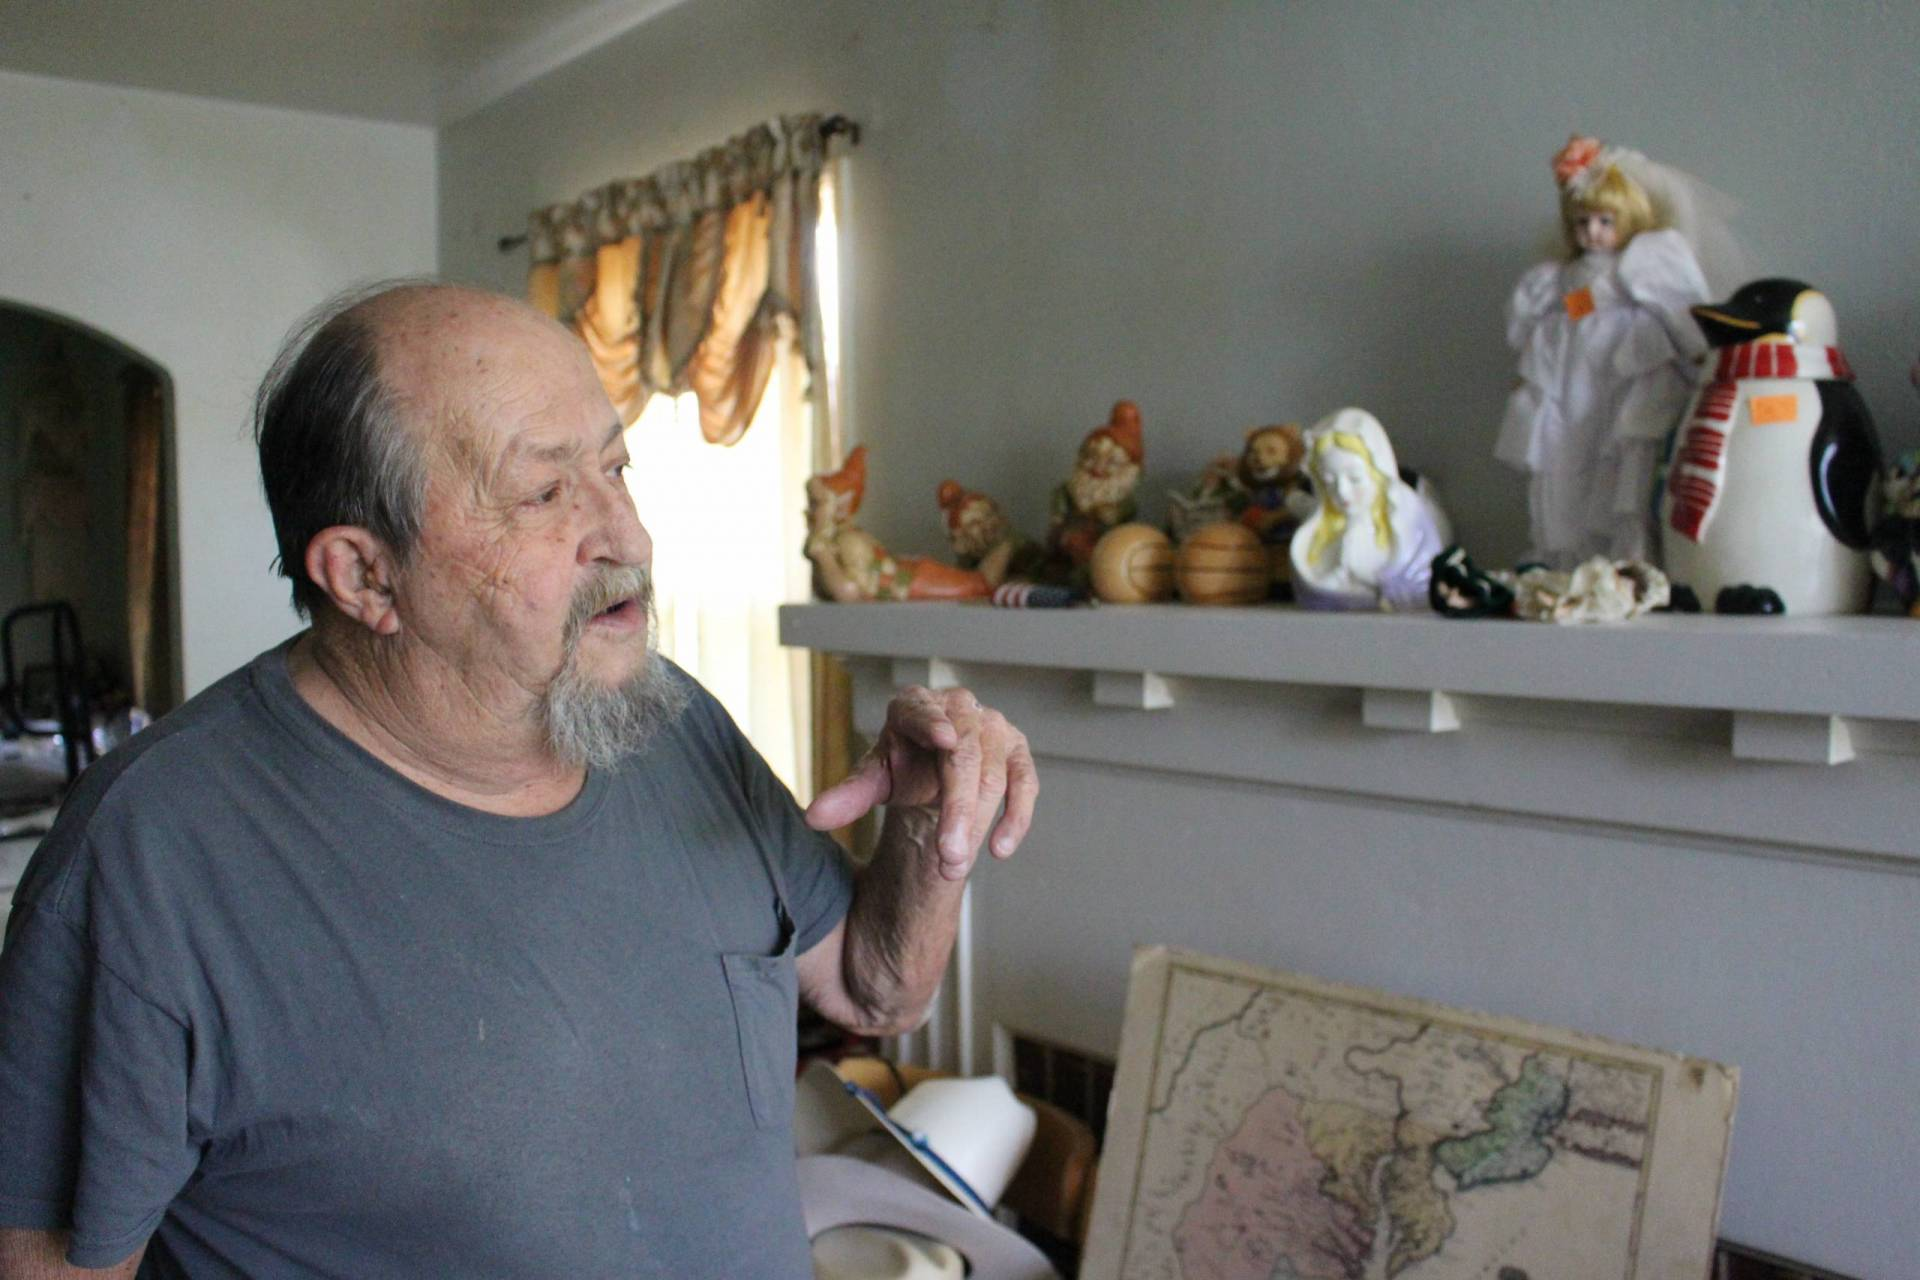 A man at his home pointing to animal-shaped cookie jars on a shelf.